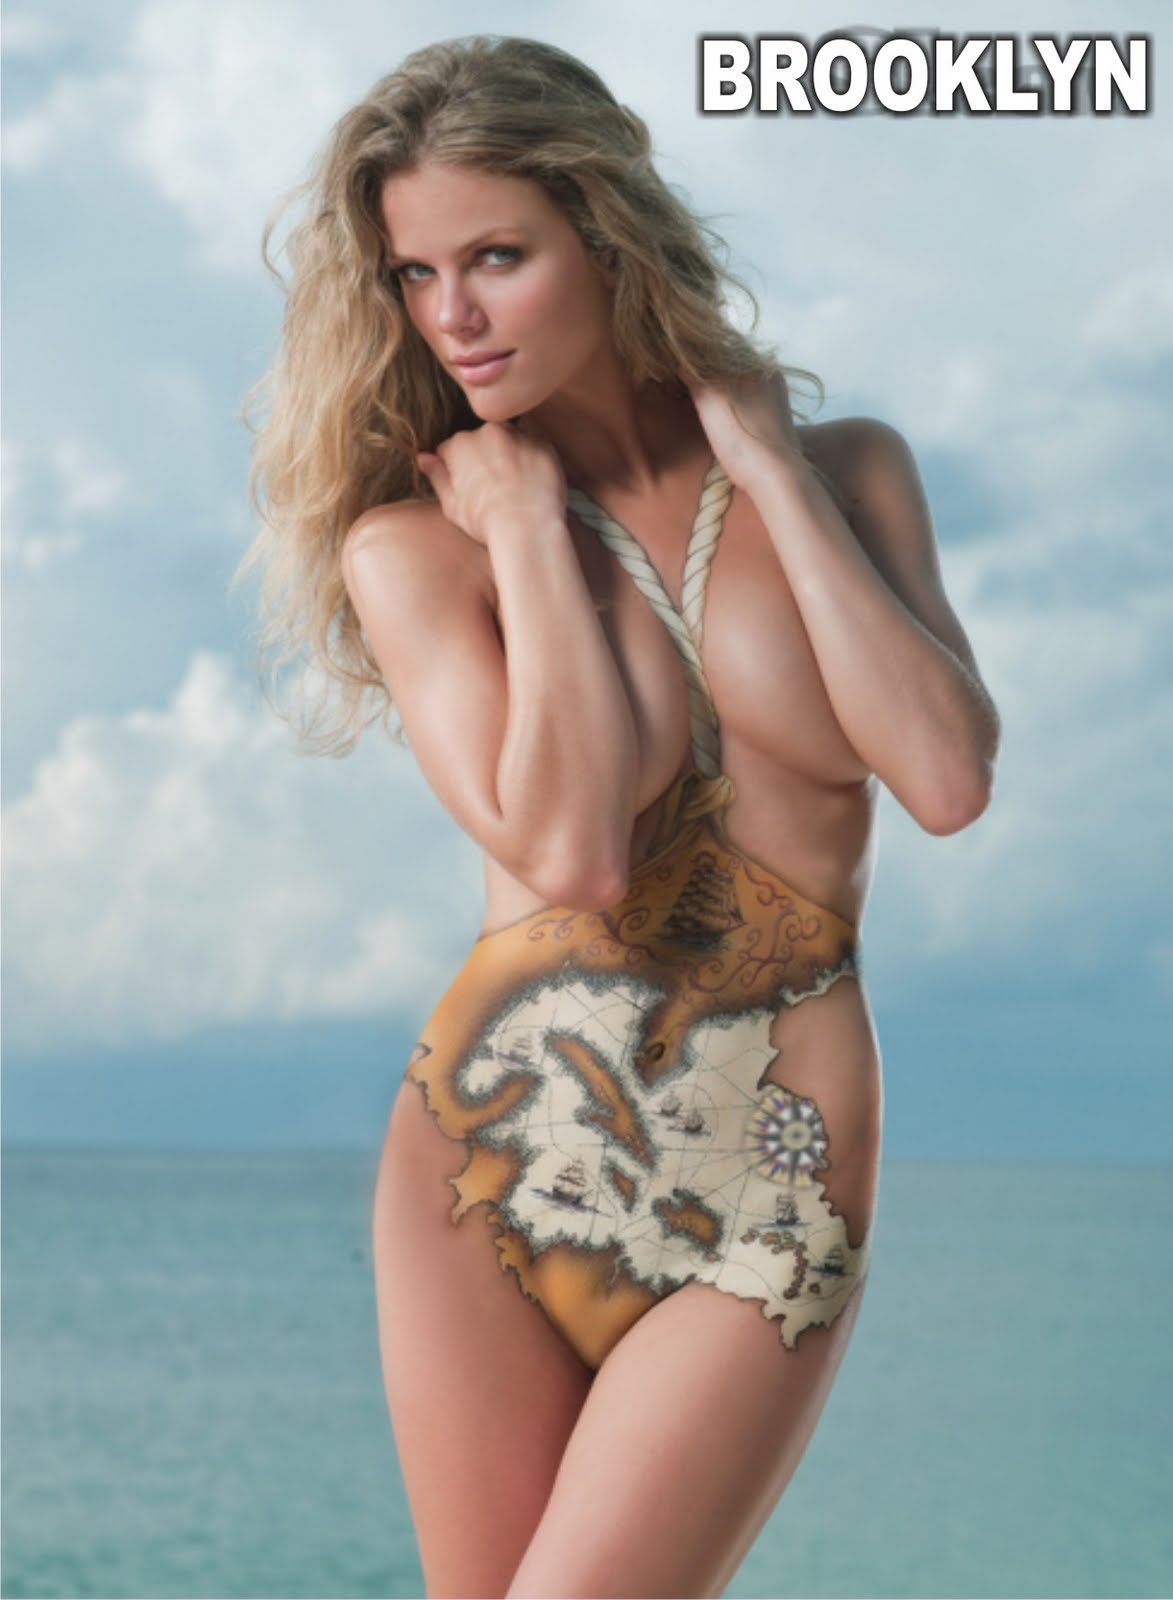 Brooklyn Decker Body Paint HOT GIRLS In BIKINI